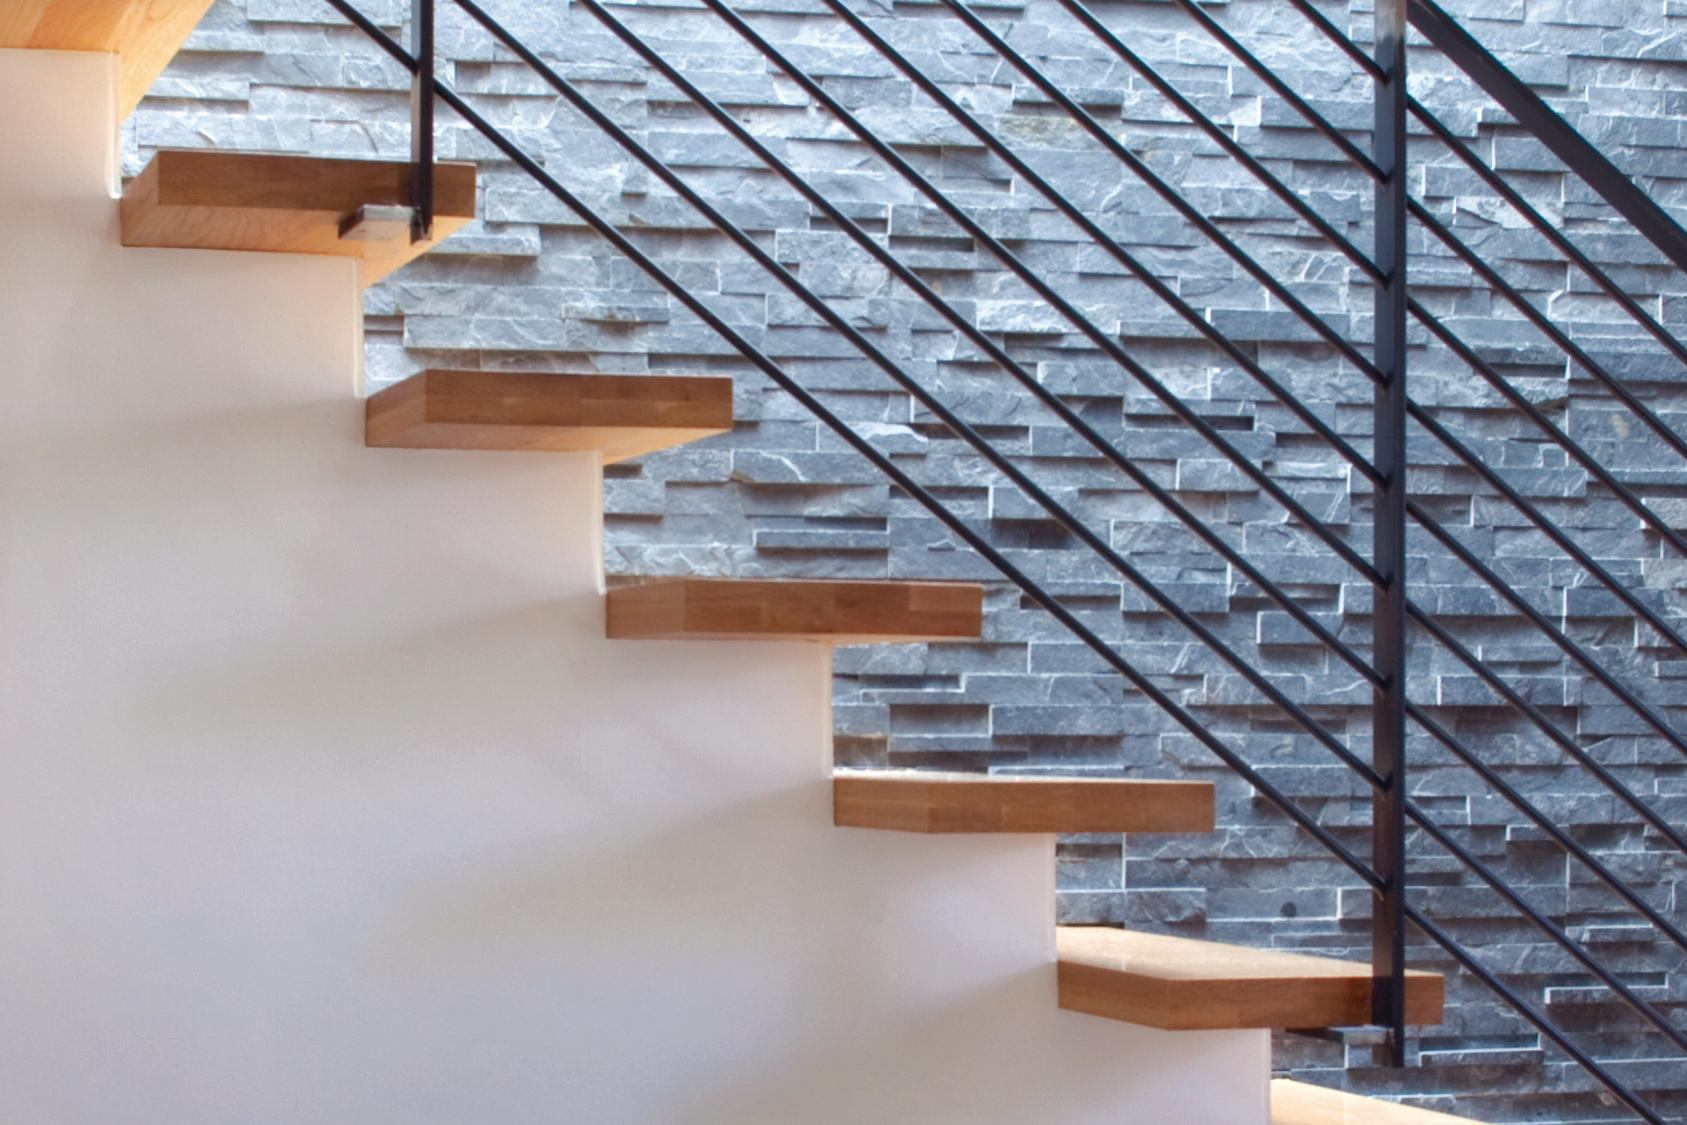 How To Build Floating Stairs An Easier Way To Design Floating Stairs Builder Magazine